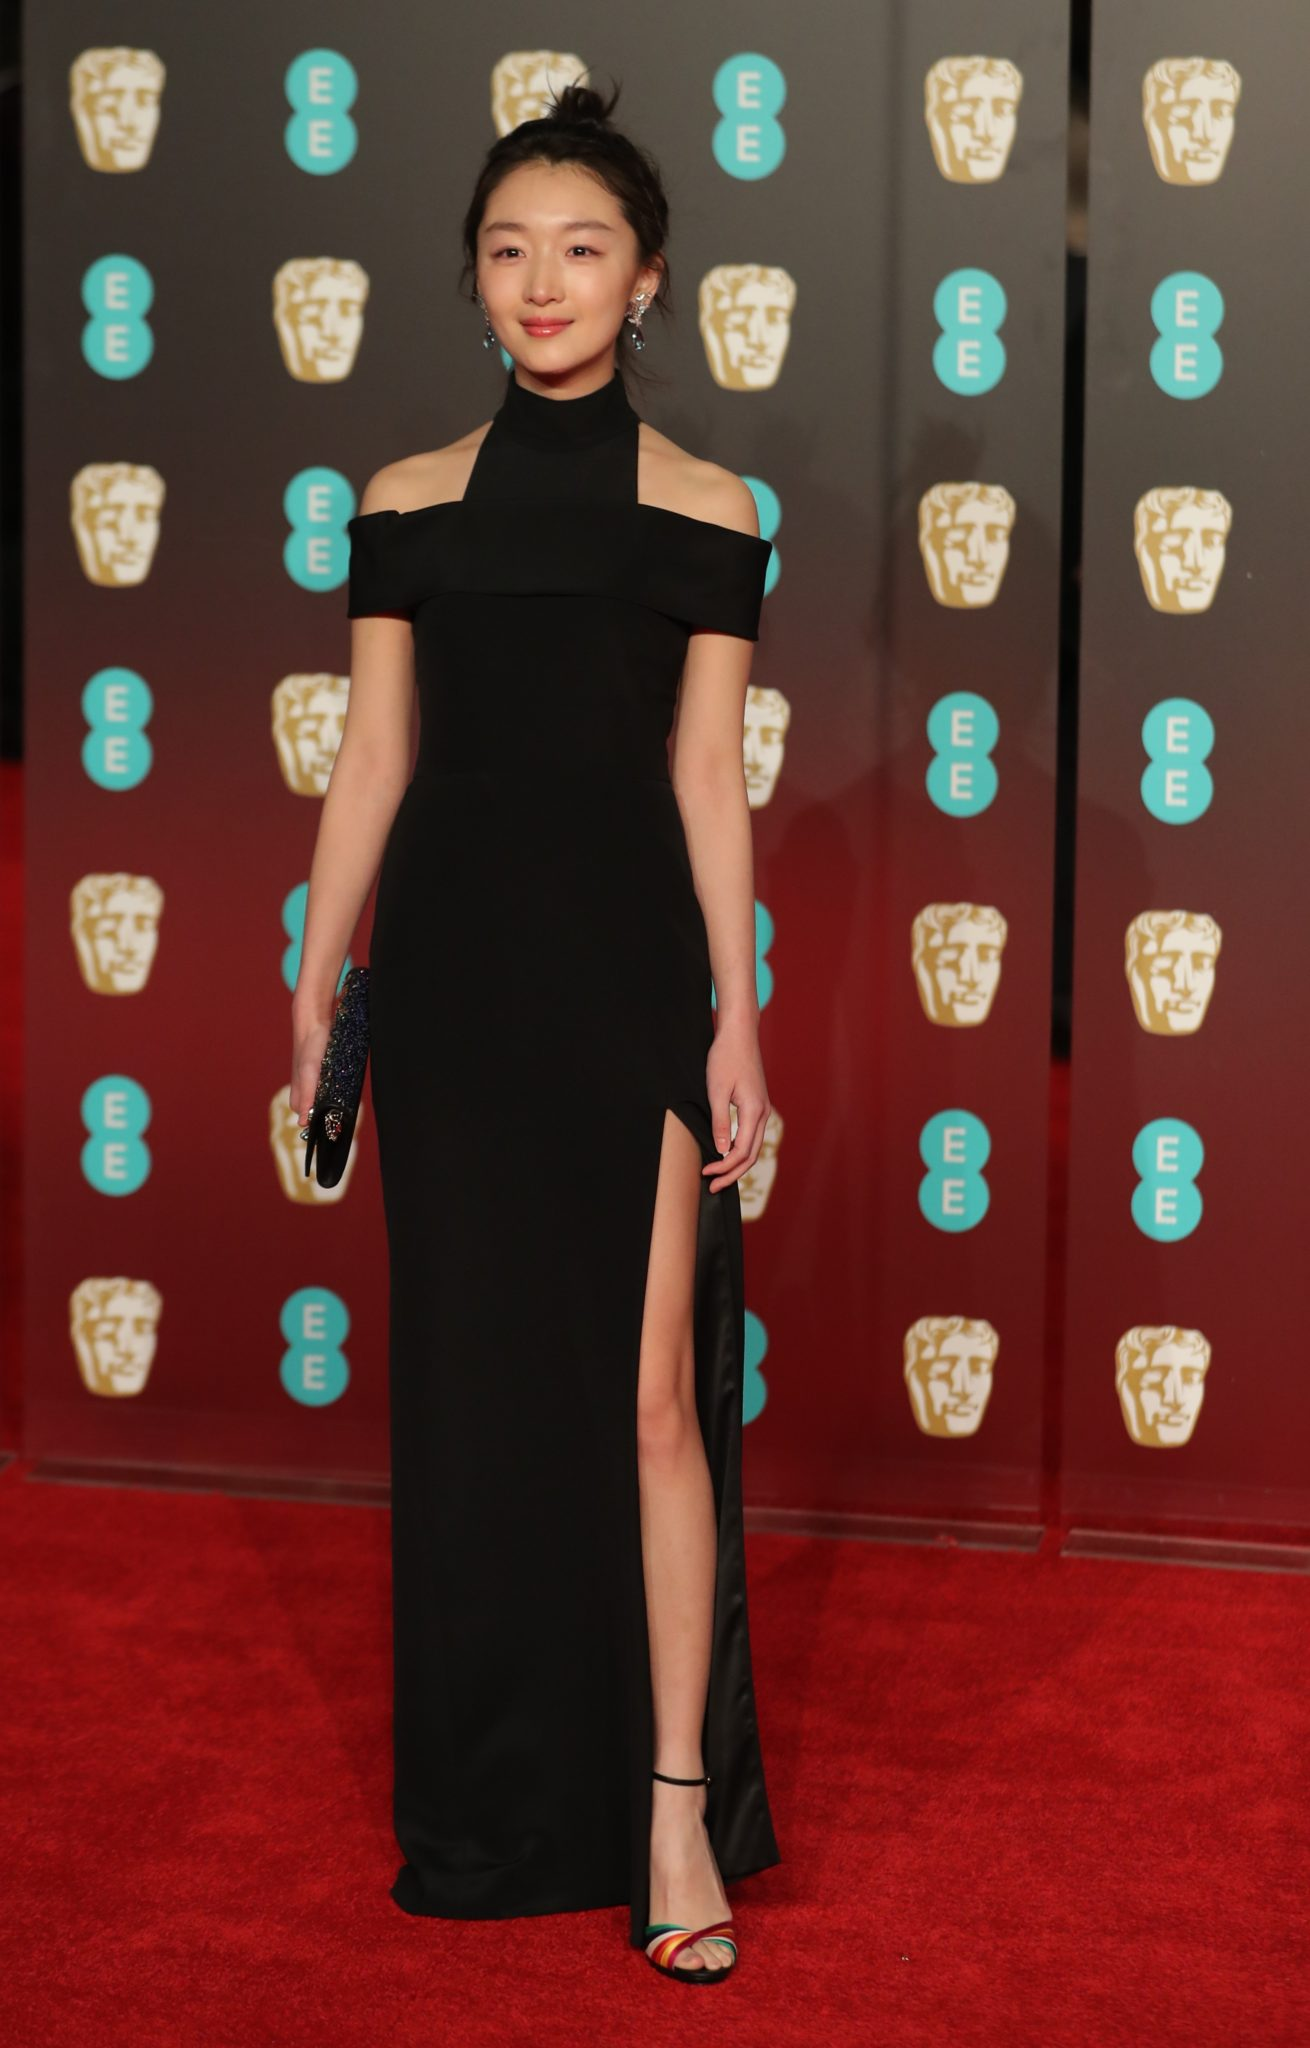 Chinese actress Zhou Dongyu poses on the red carpet upon arrival at the BAFTA British Academy Film Awards at the Royal Albert Hall in London on February 18, 2018. / AFP PHOTO / Daniel LEAL-OLIVAS (Photo credit should read DANIEL LEAL-OLIVAS/AFP/Getty Images)